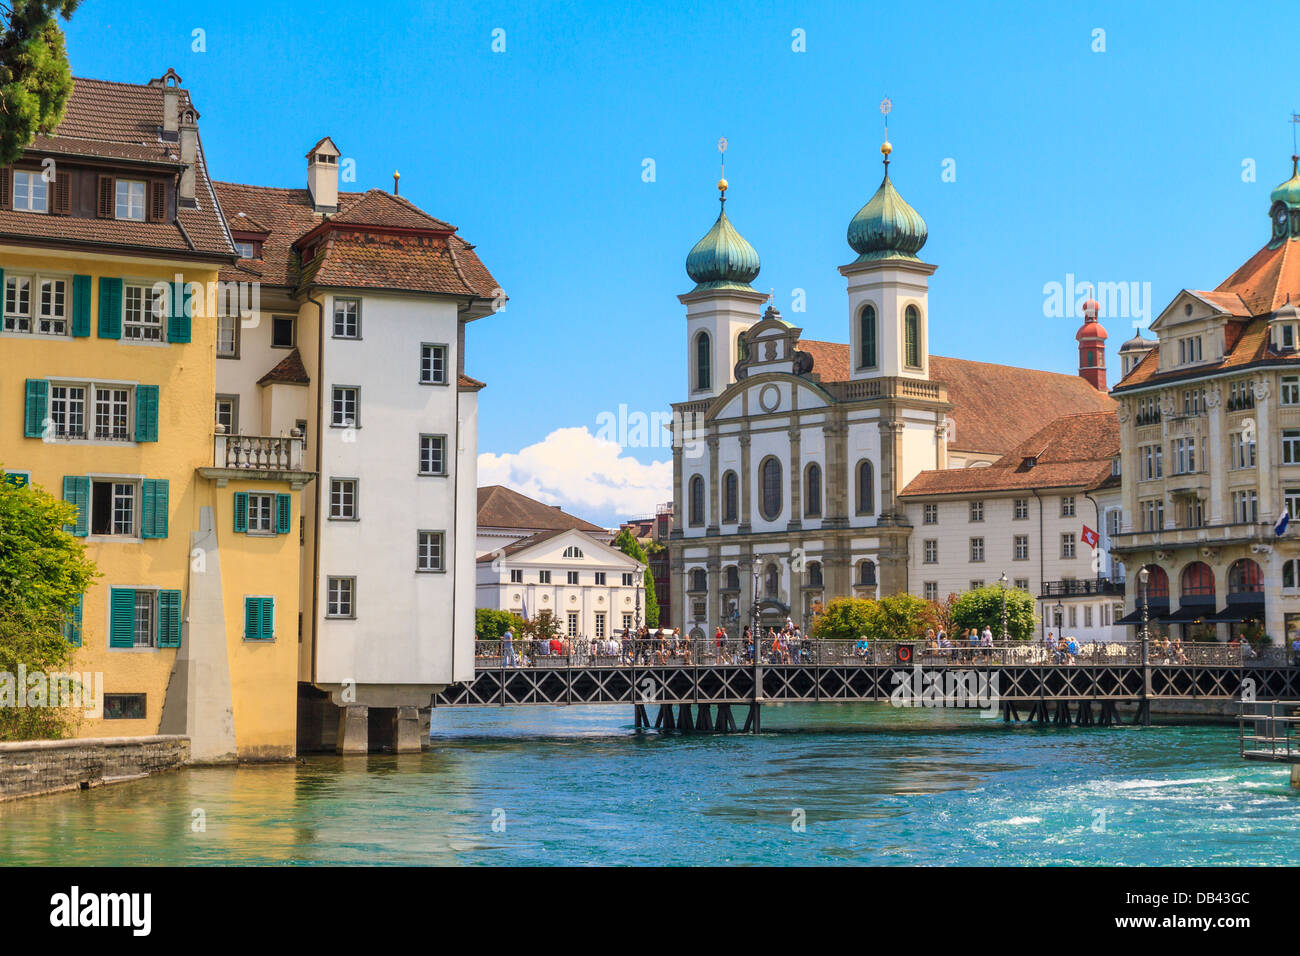 Lucerne city view with river Reuss and Jesuit church, Switzerland - Stock Image